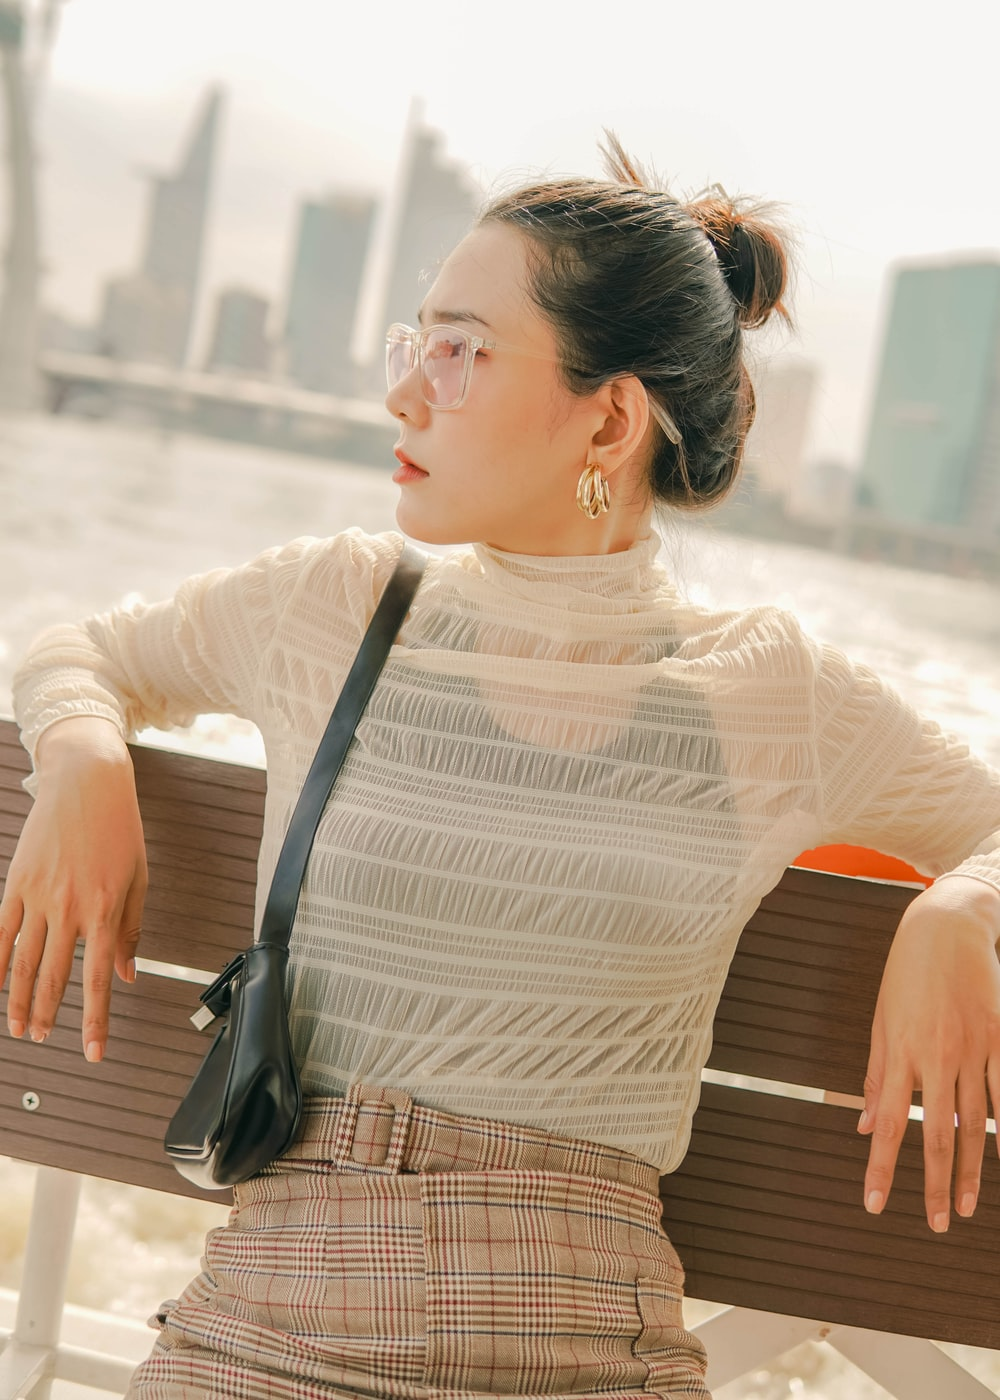 woman in white long sleeve shirt sitting on brown wooden bench